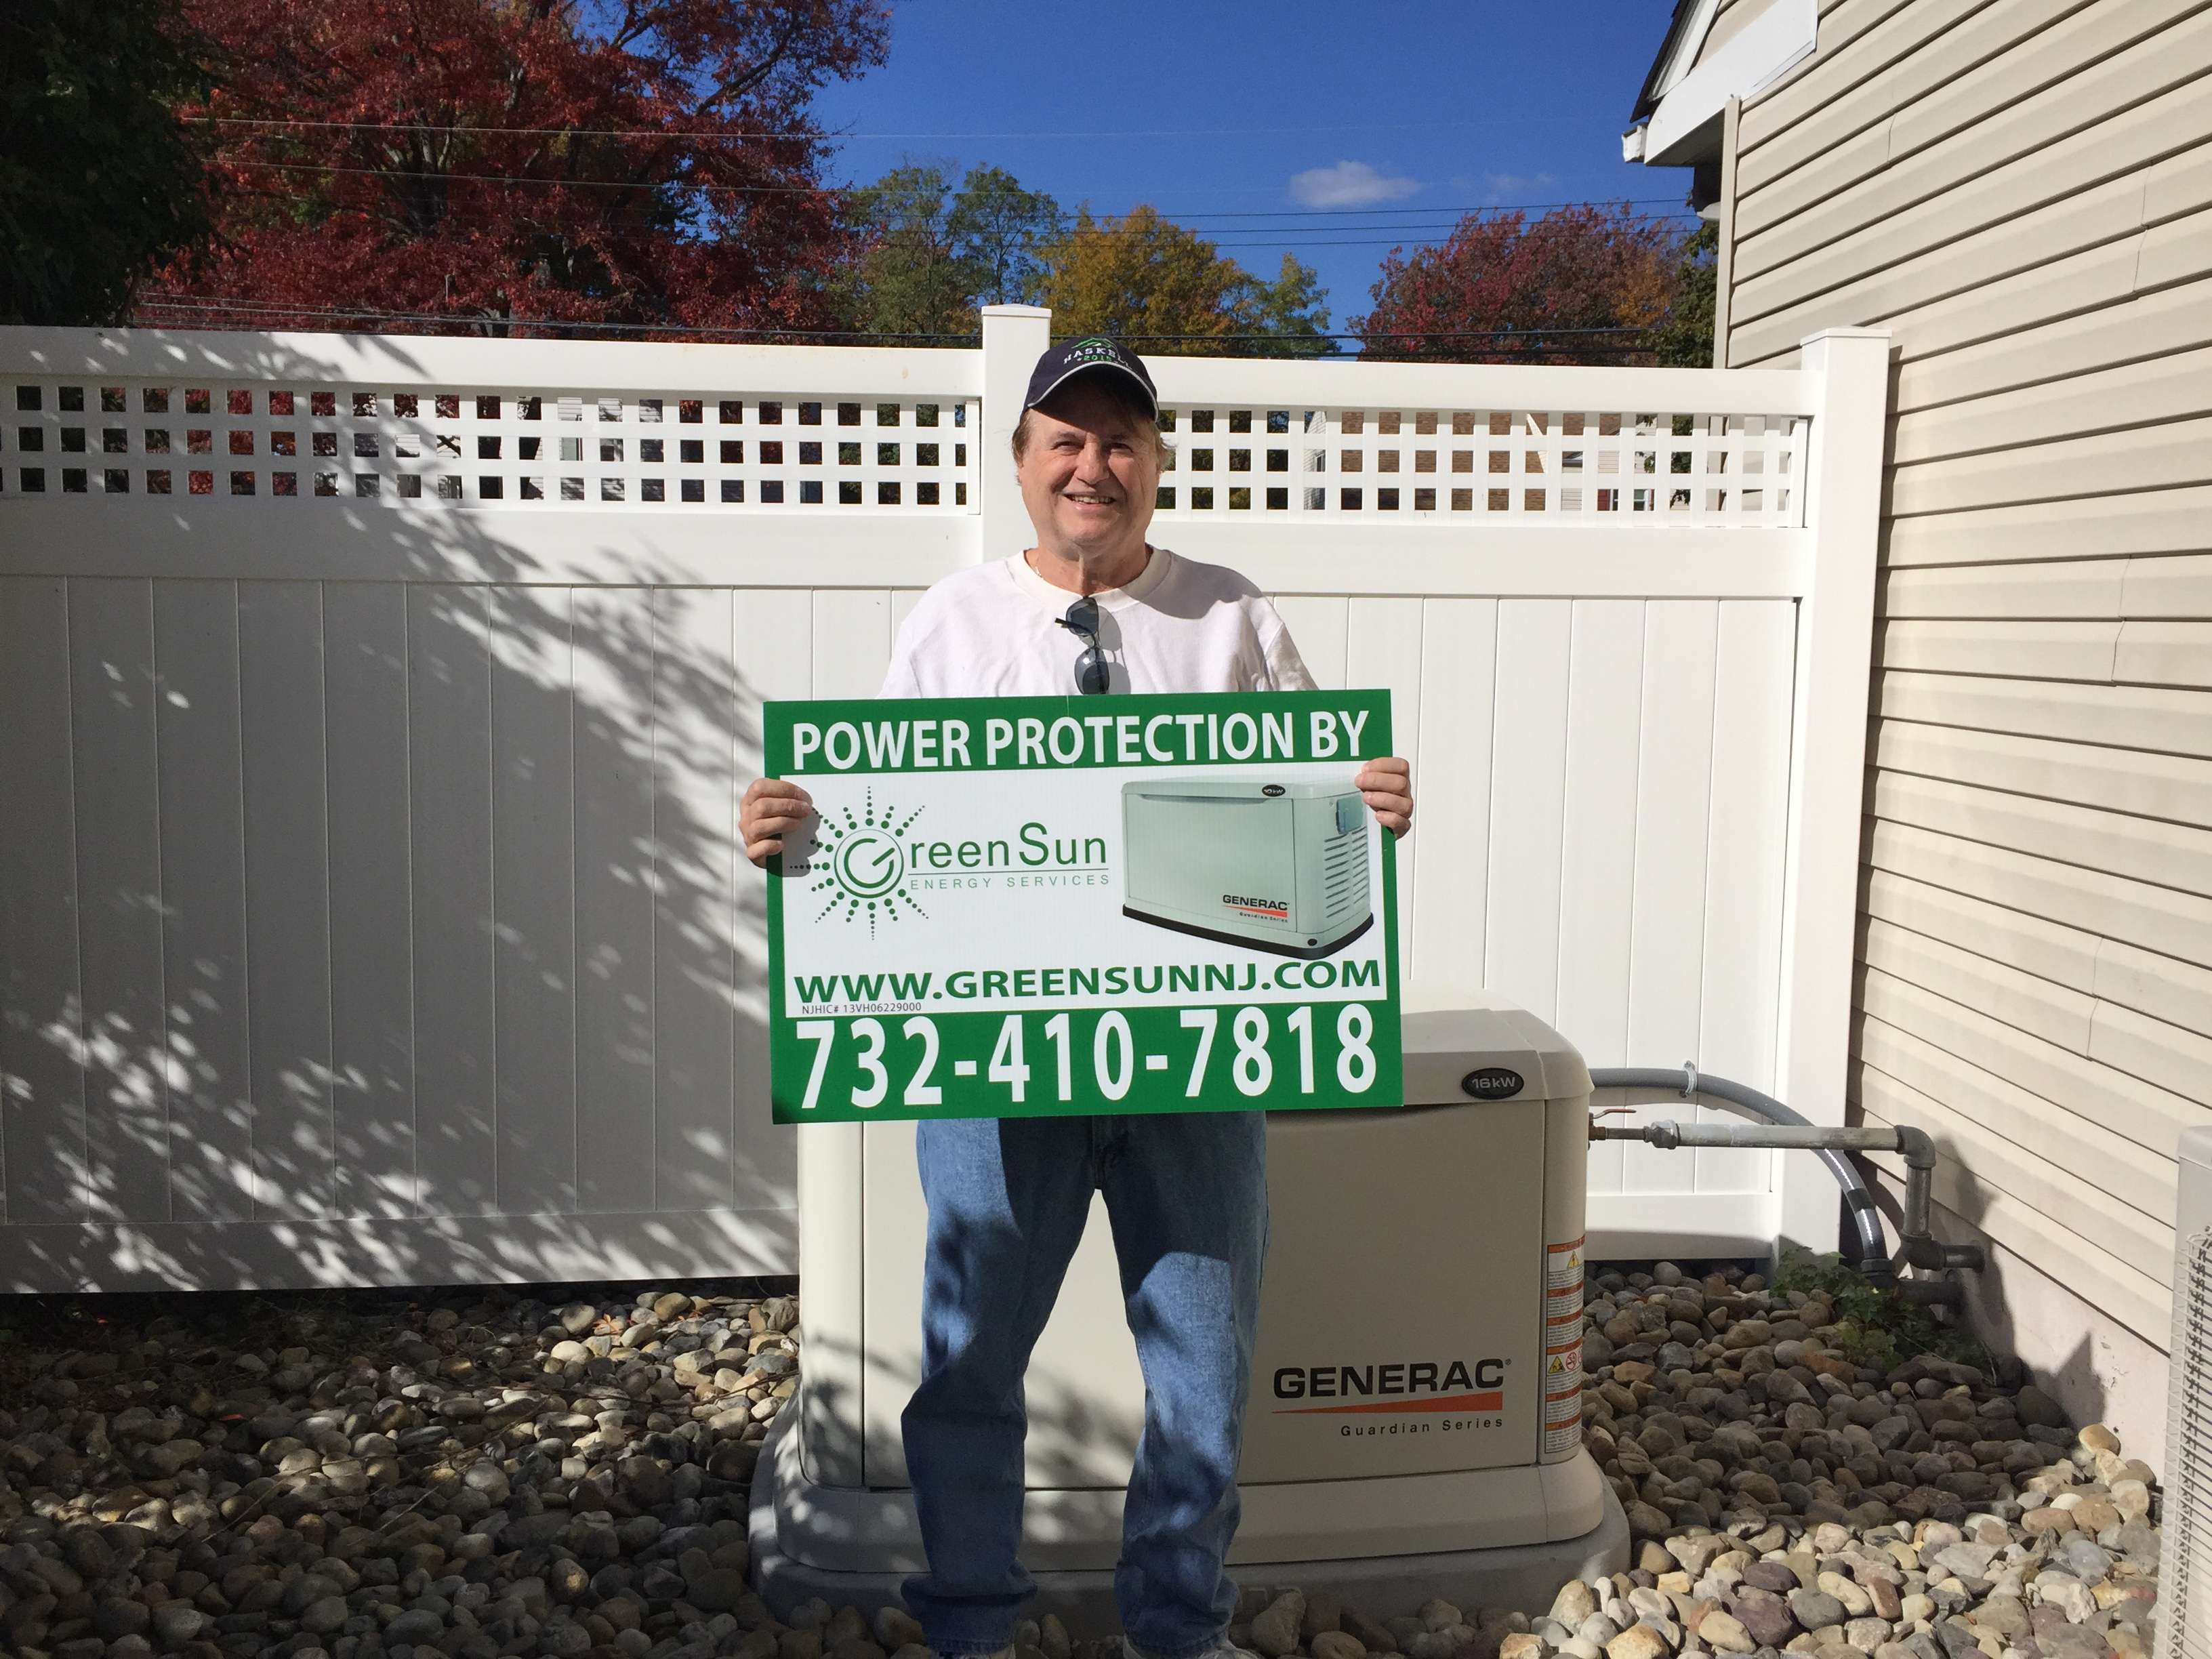 Generac Generator Installation Review In Middletown, NJ